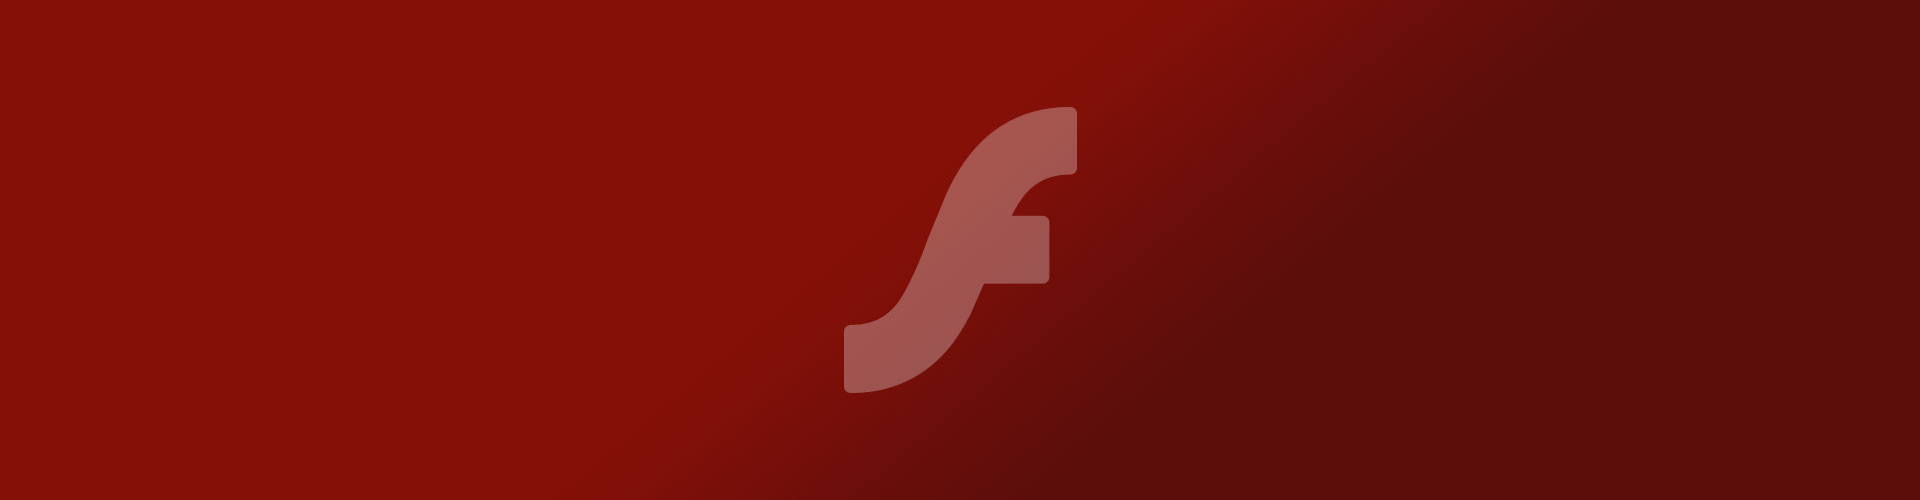 Header image of Google to phase out Flash